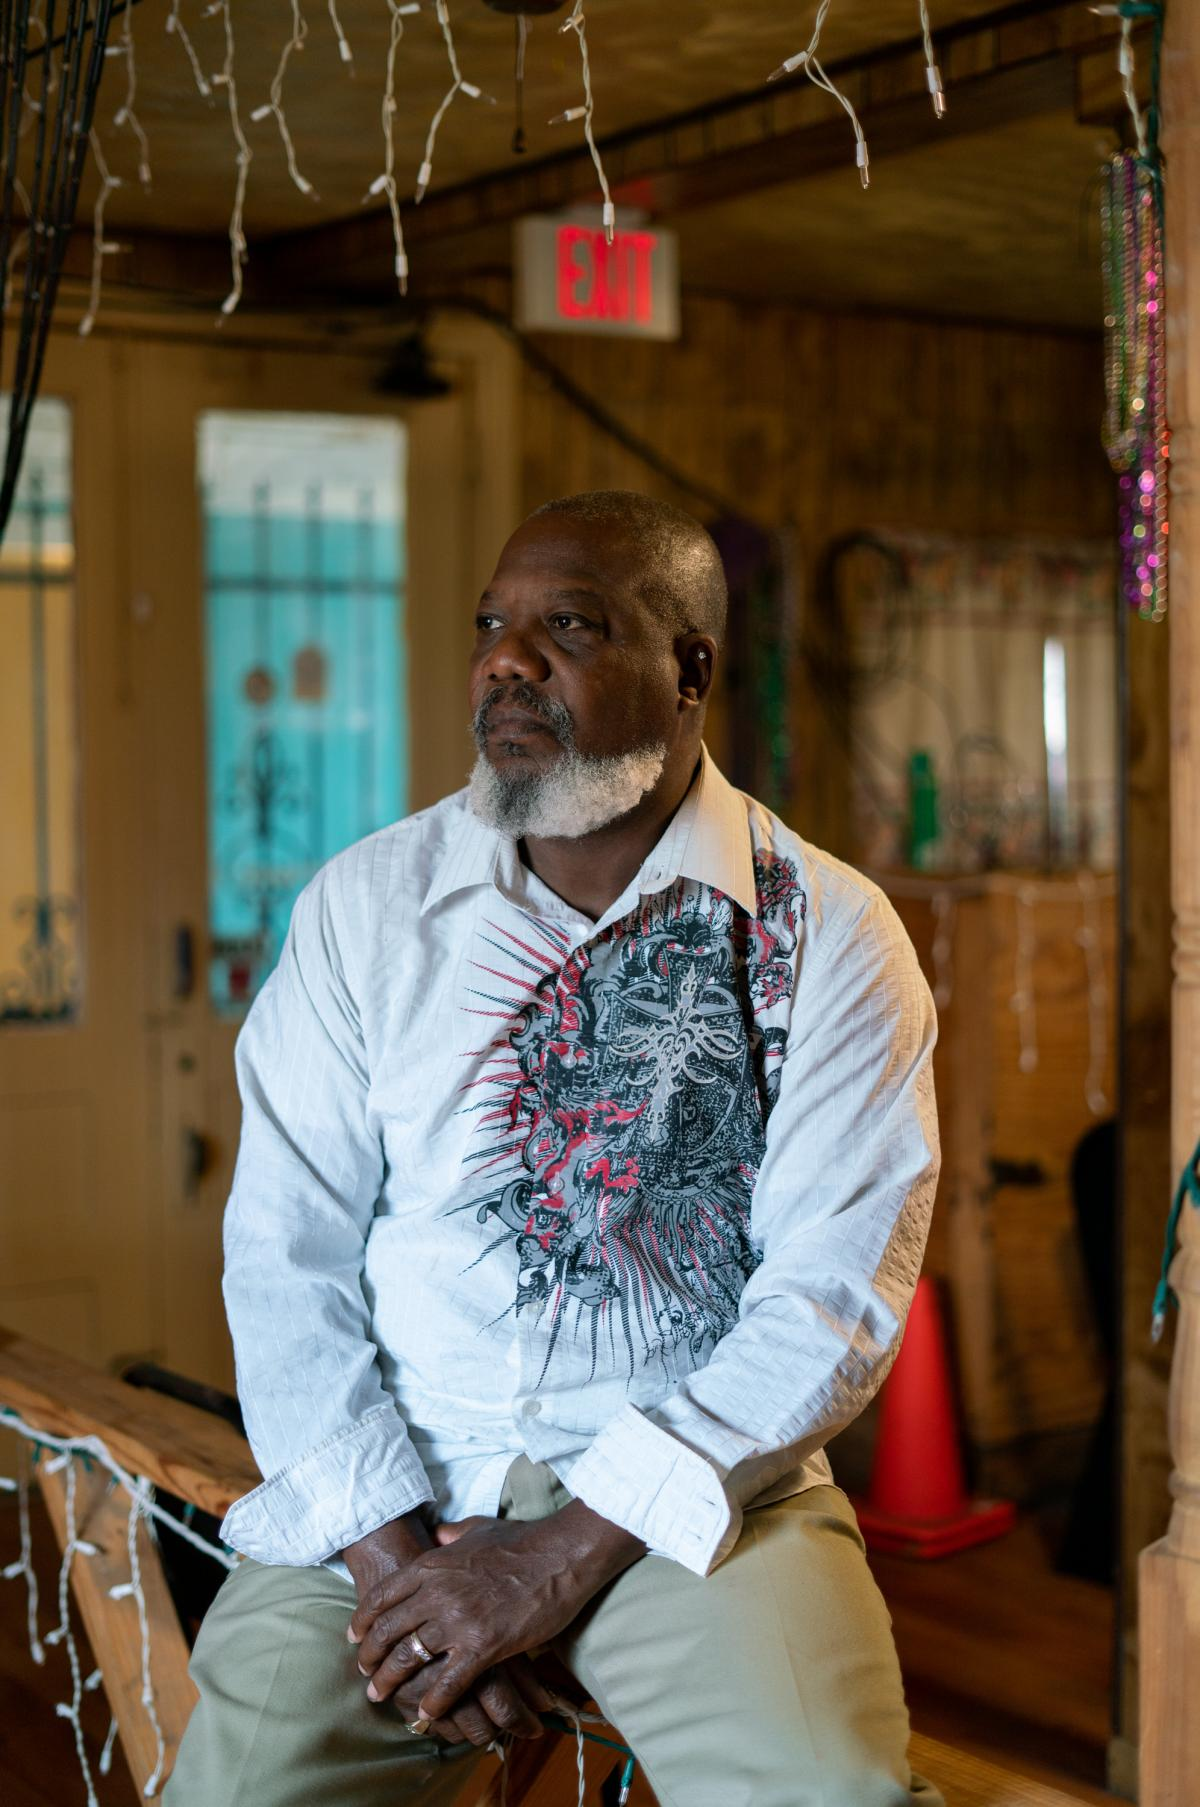 Hilton Kelley's home in Port Arthur was damaged by Hurricane Harvey. The local environmental and health activist says many Black people in the city were denied FEMA assistance to repair their homes, which he attributes to systemic racism in how the agency